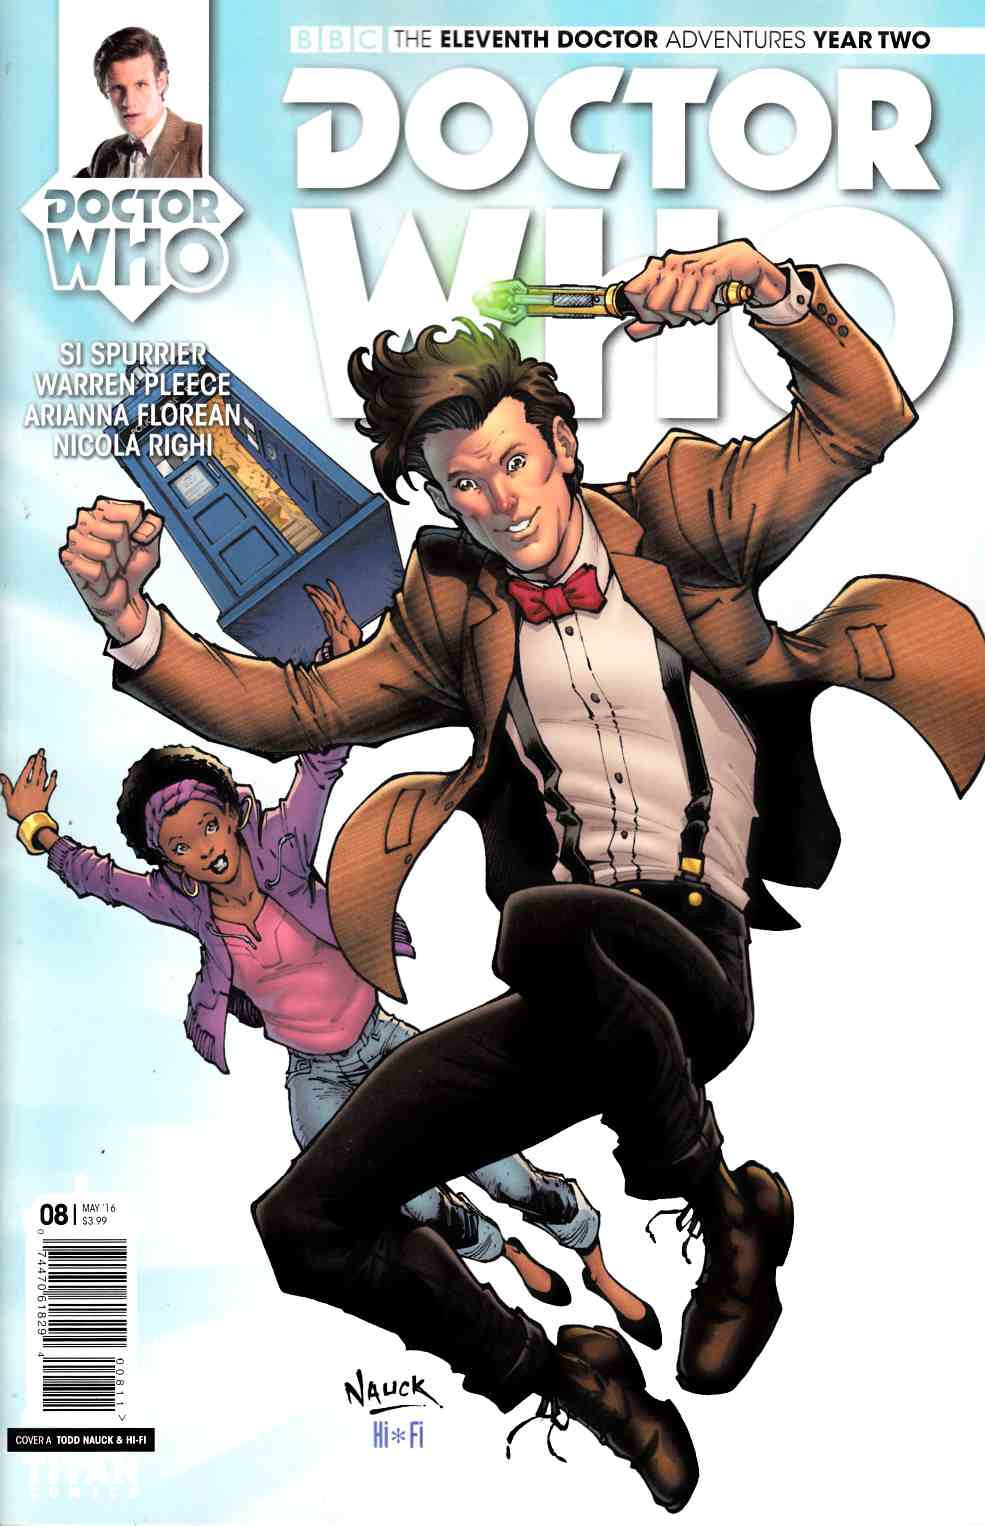 Doctor Who 11th Doctor Year 2 #8 Cover A [Titan Comic]